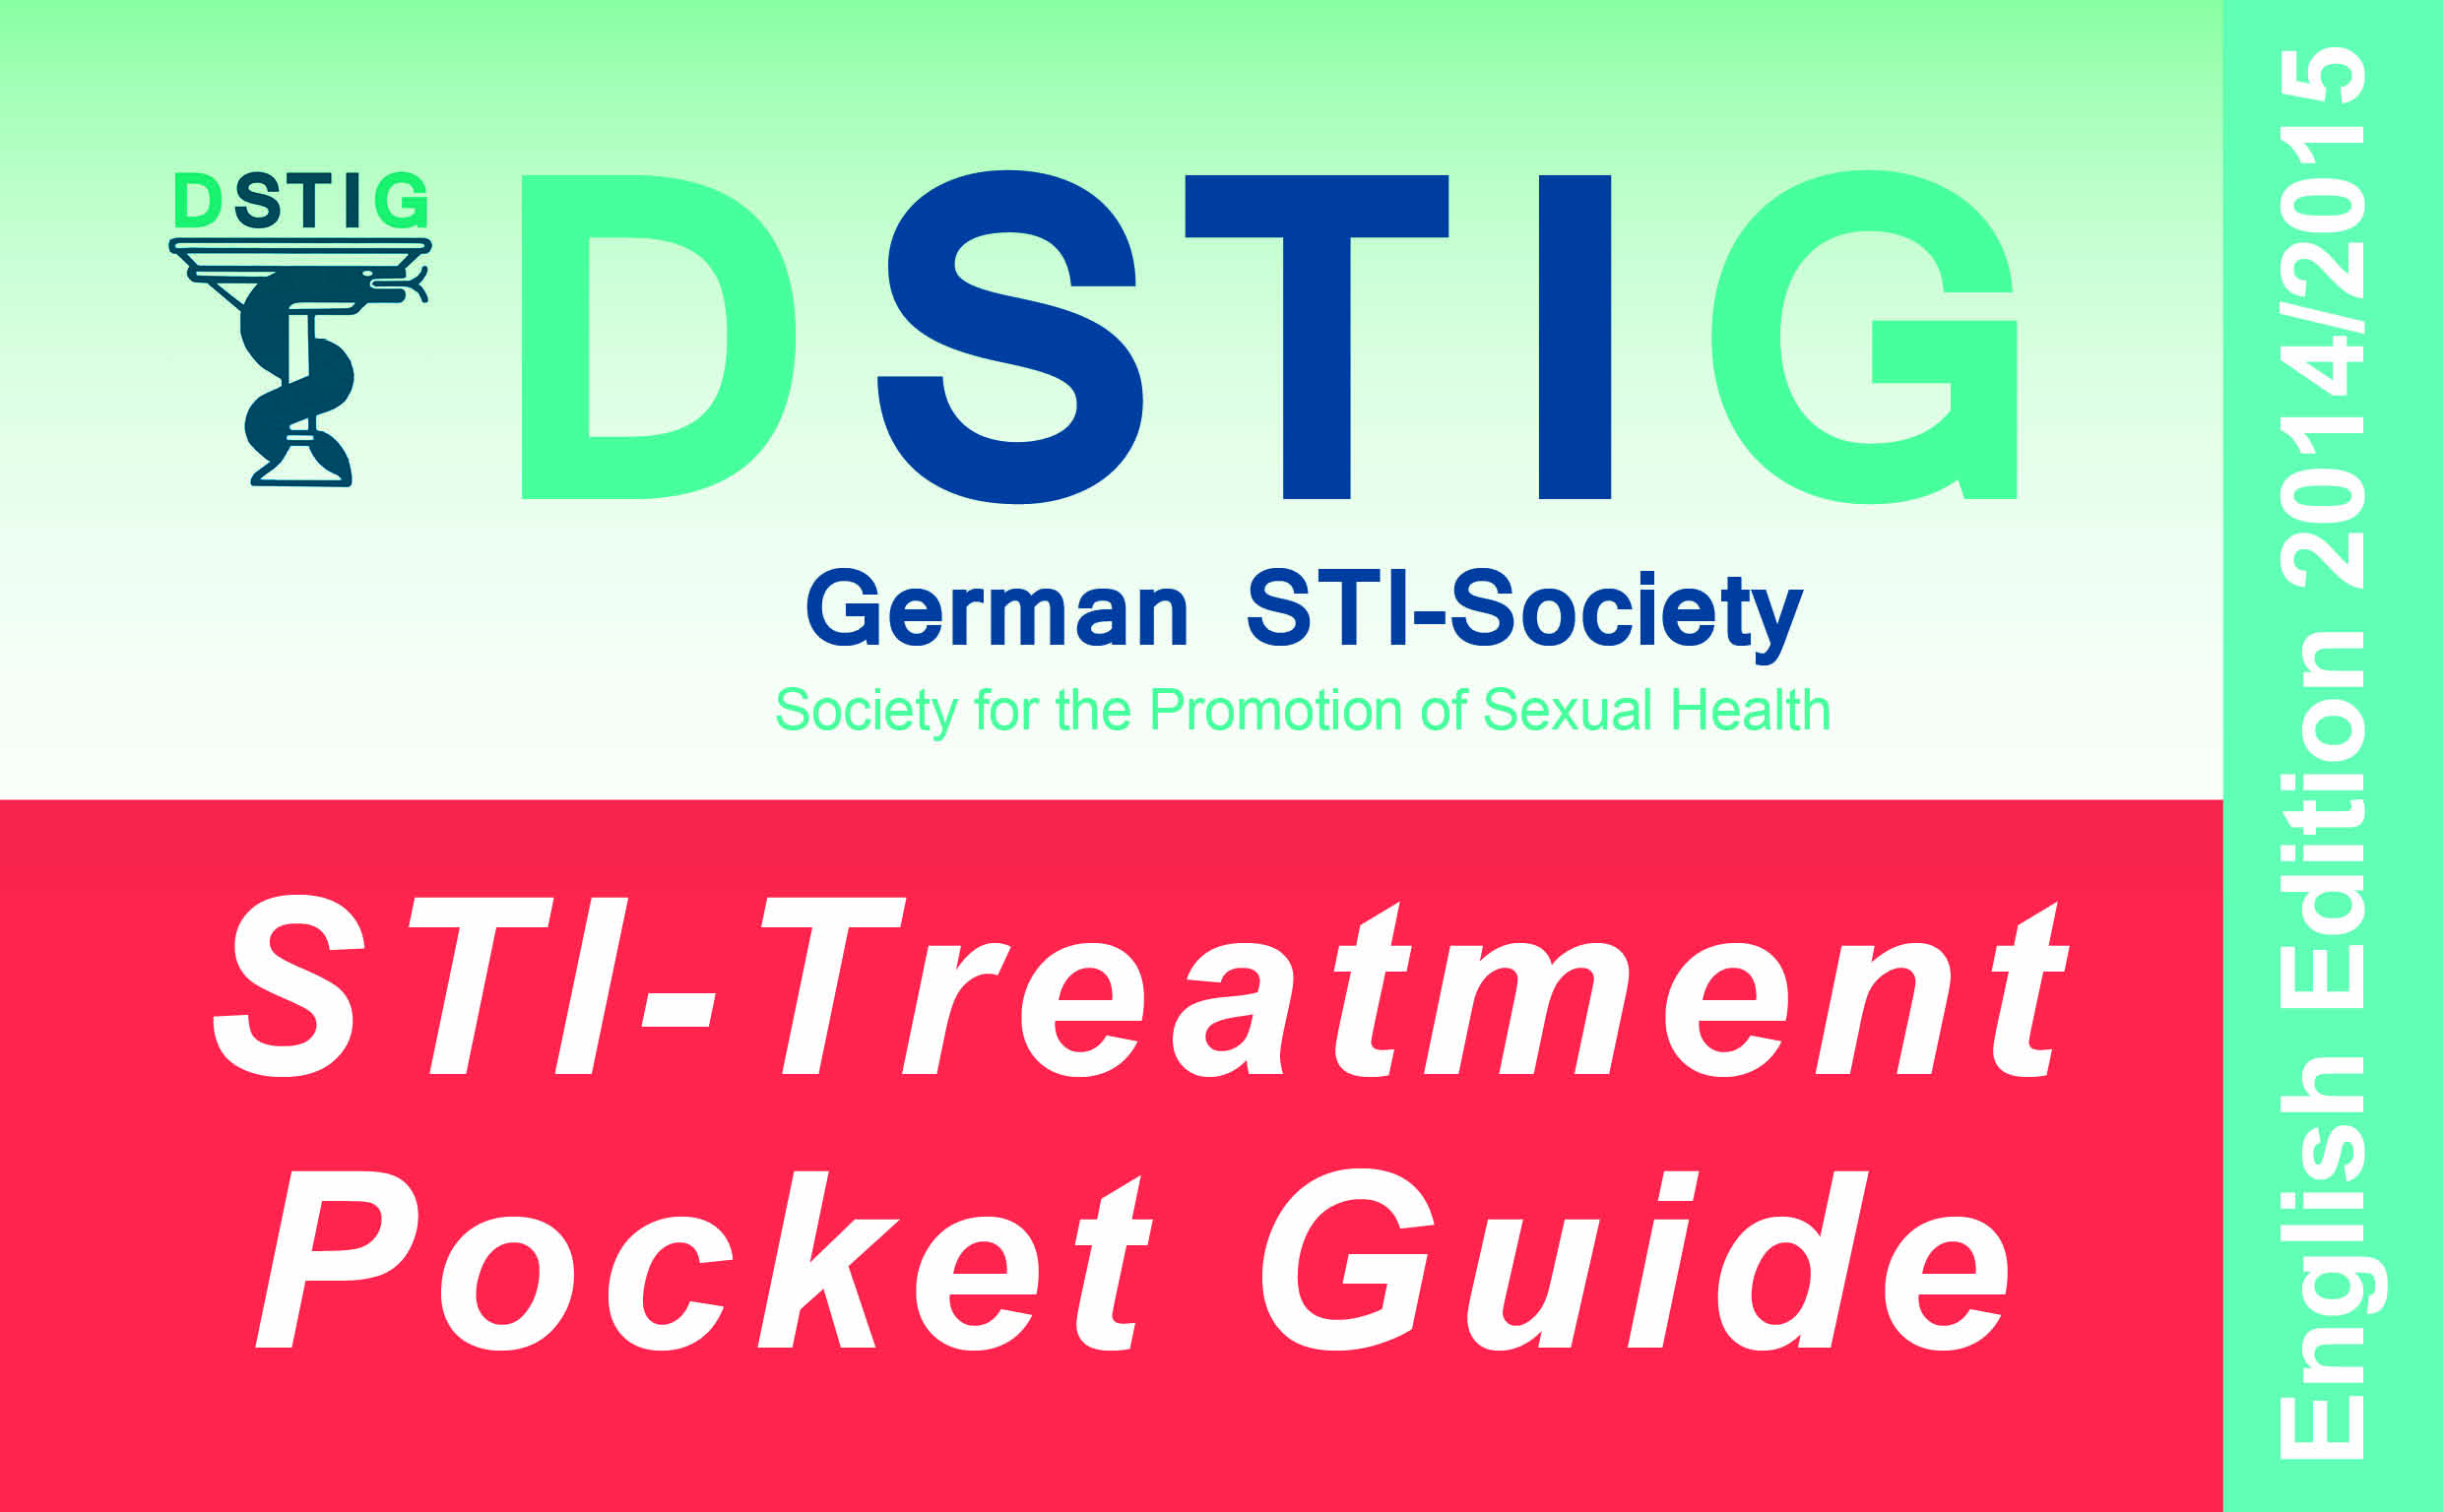 sti-treatment pocket guide_cover